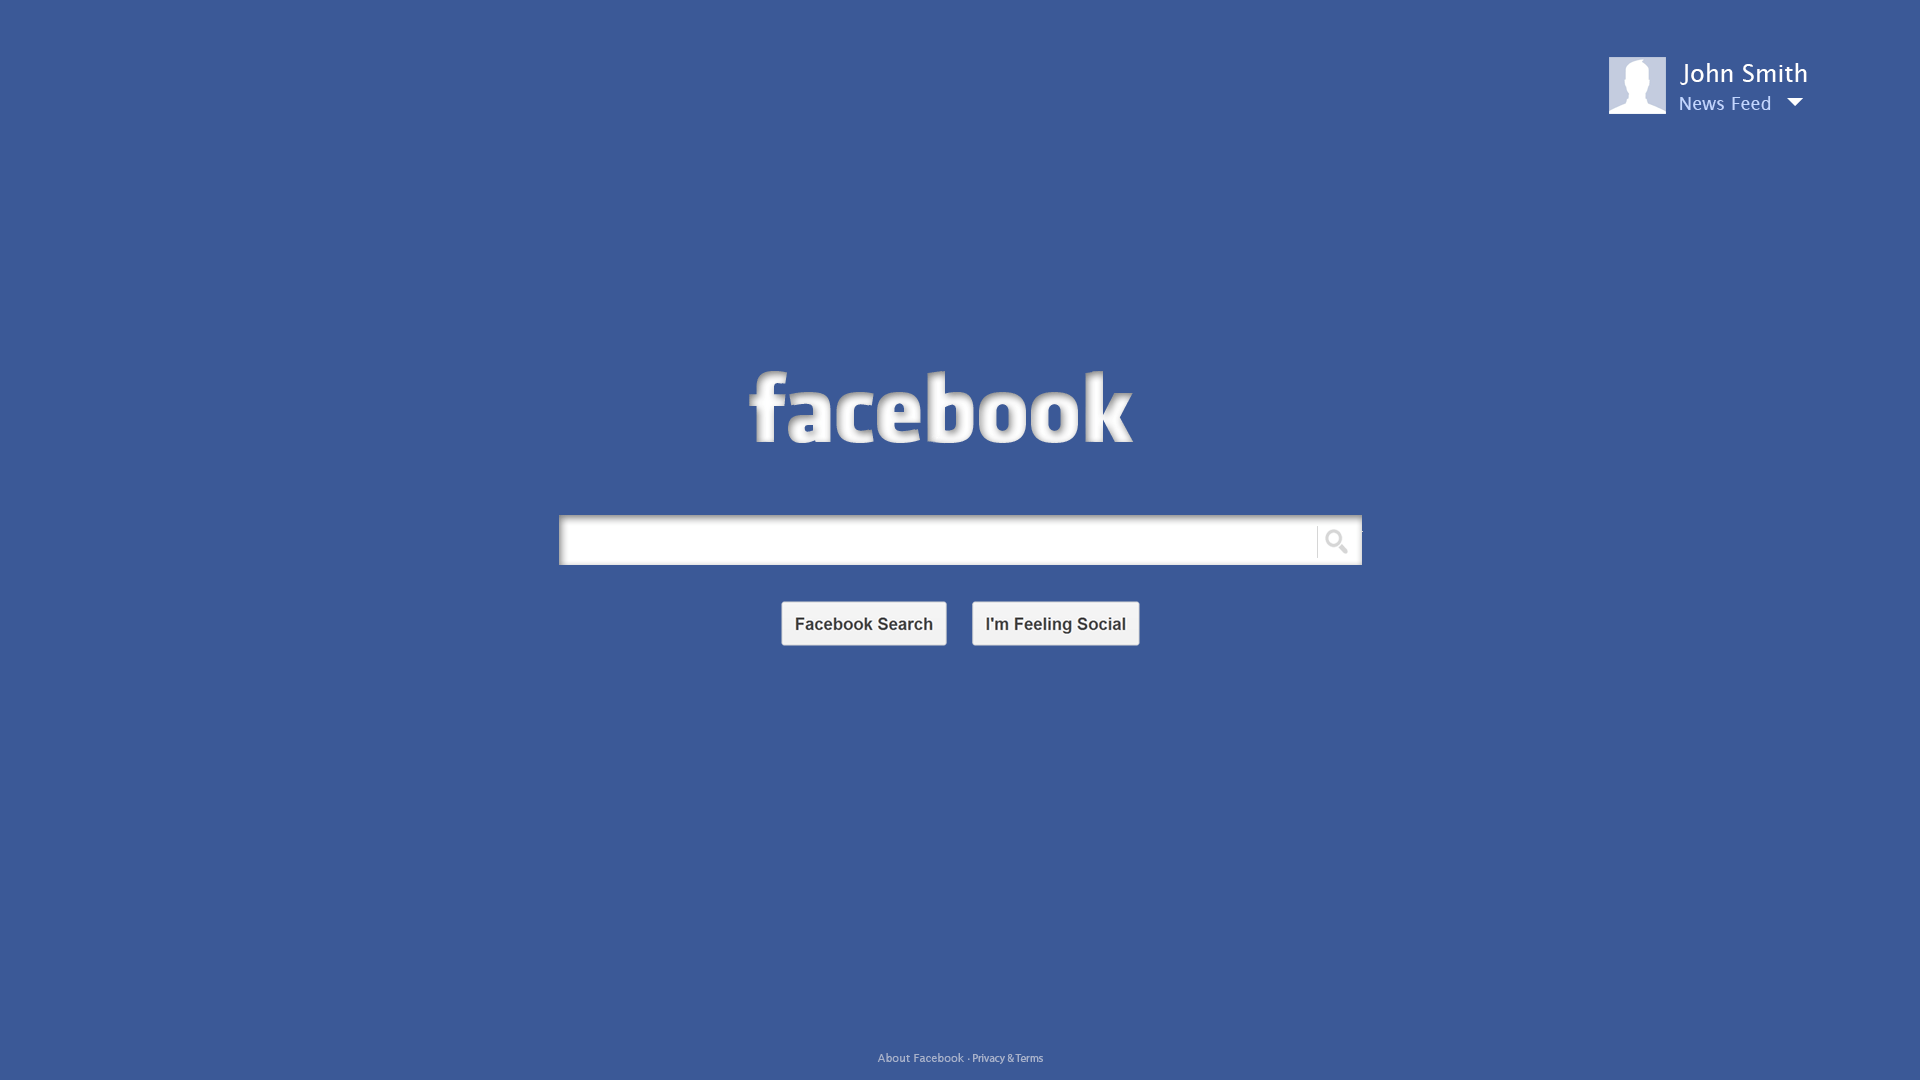 How To Optimize Your Facebook Page For Search Engines